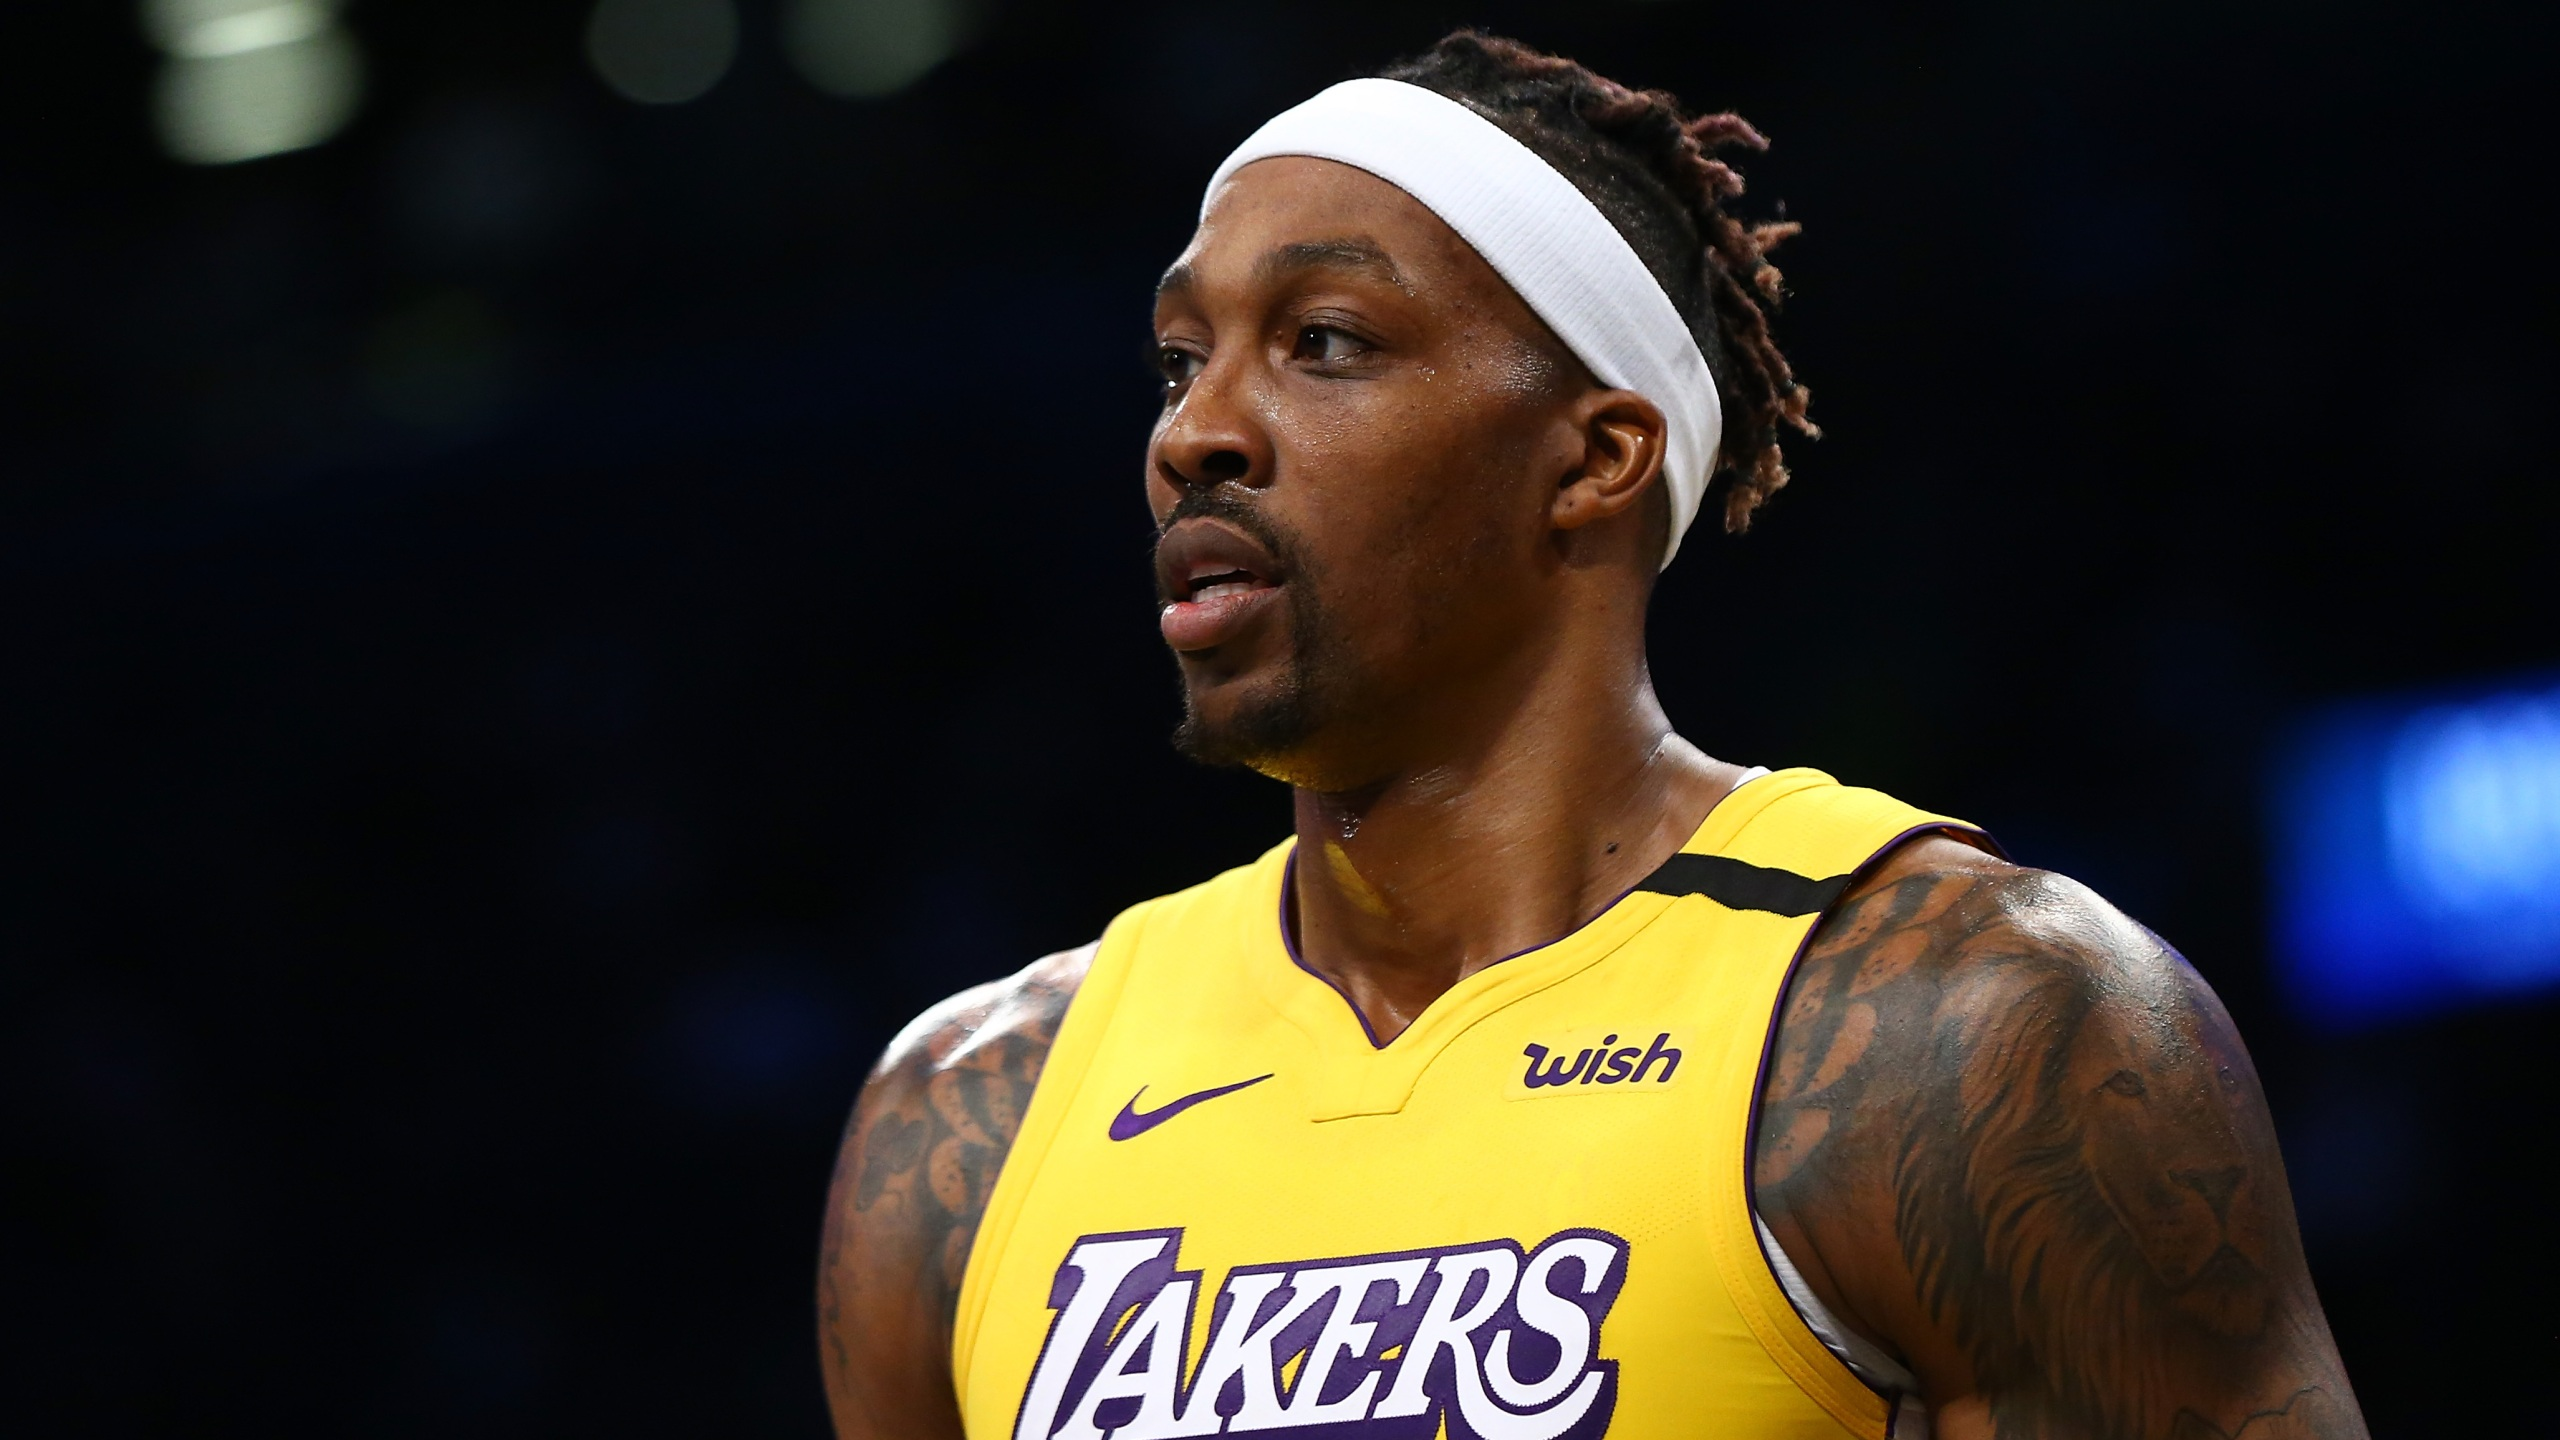 Dwight Howard of the Los Angeles Lakers is seen at Barclays Center on Jan. 23, 2020 in New York City. (Mike Stobe/Getty Images)